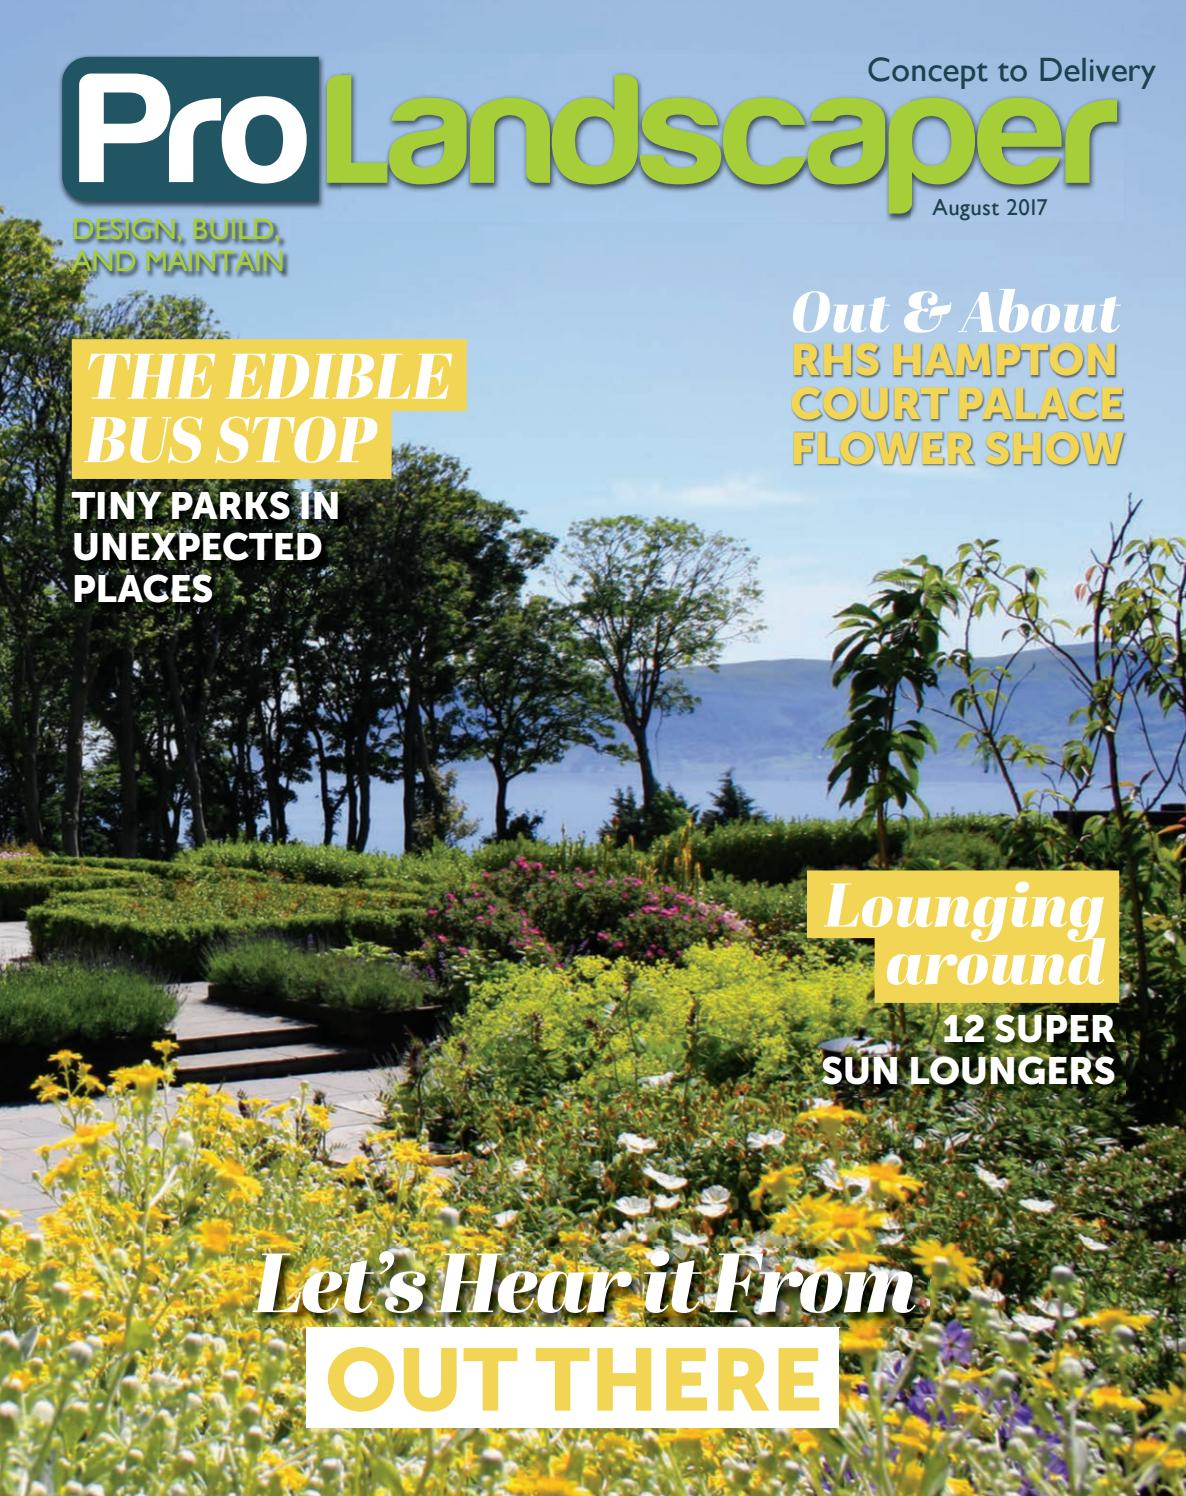 Pro Landscaper August 2017 By Eljays44 Issuu